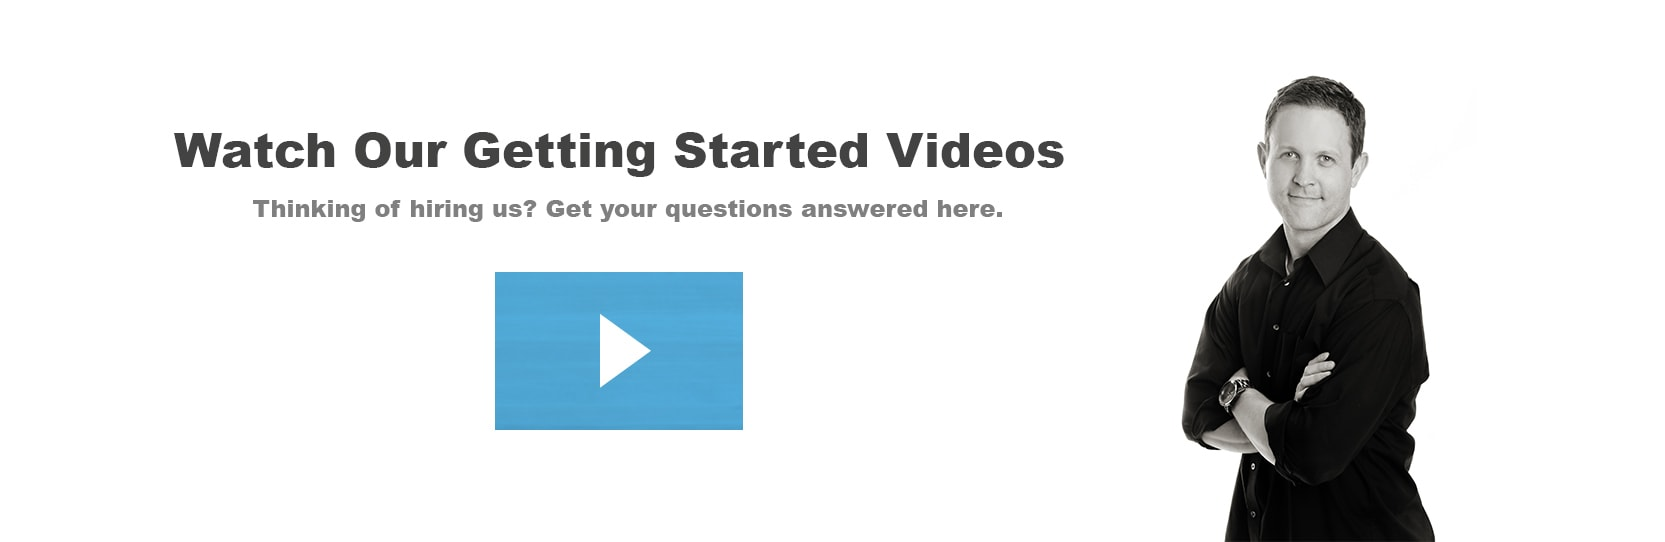 Getting-Started-Video-Banner